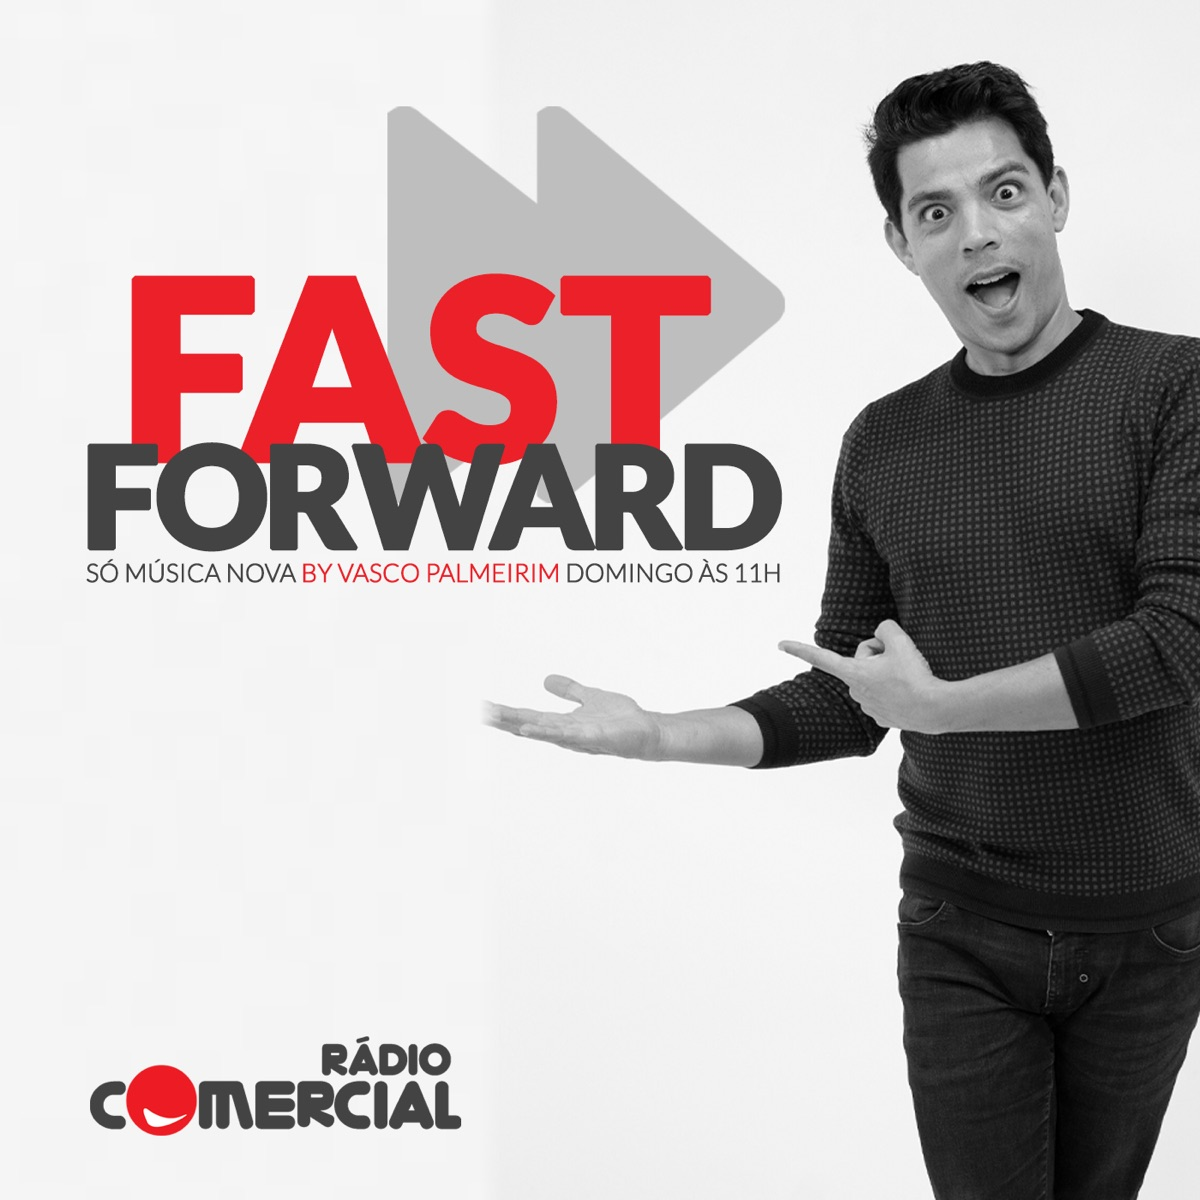 Rádio Comercial - Fast Forward